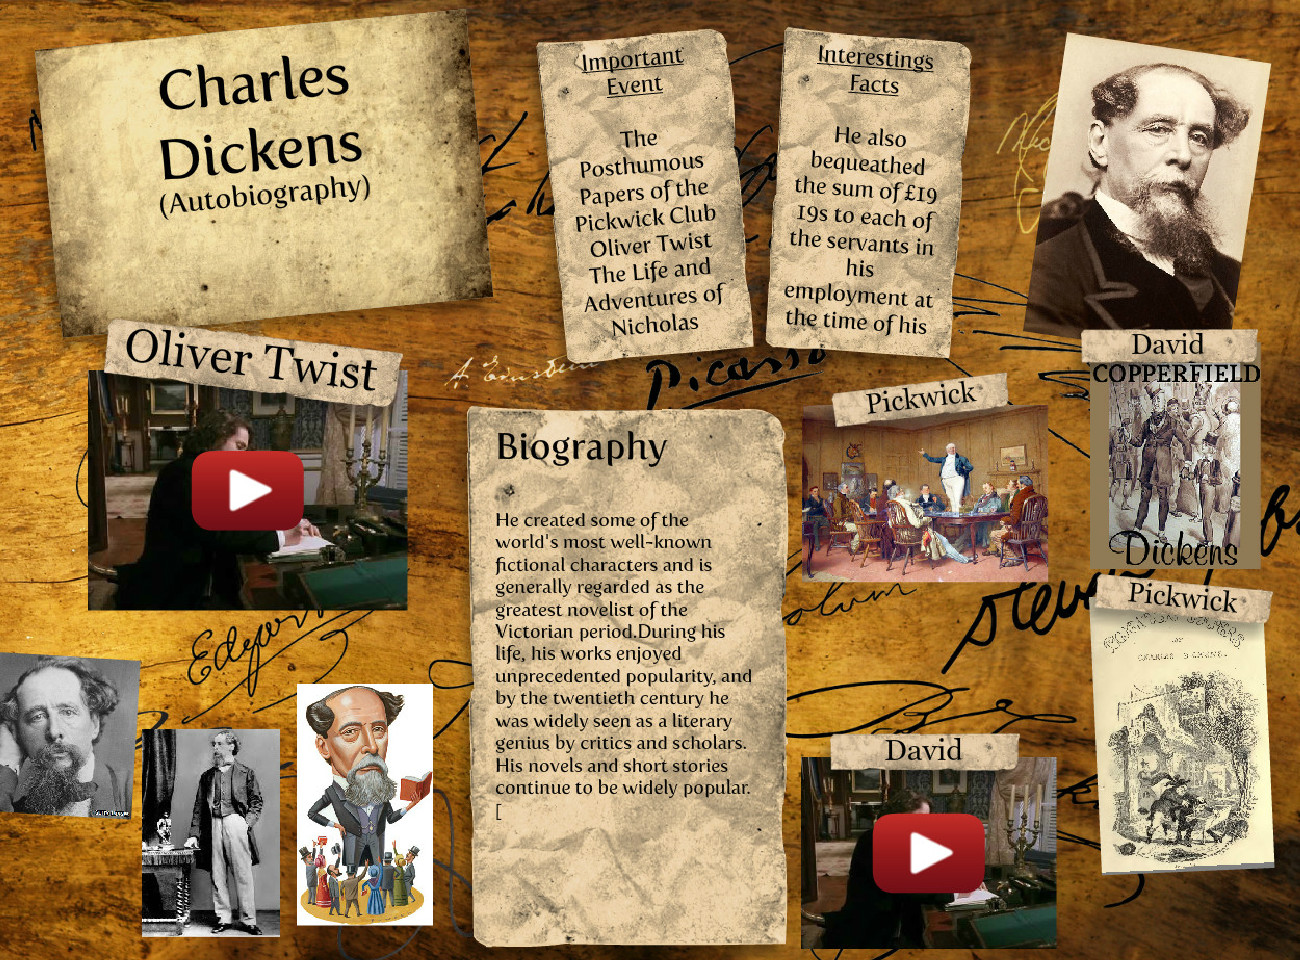 Charles Dickens (Autobiography)